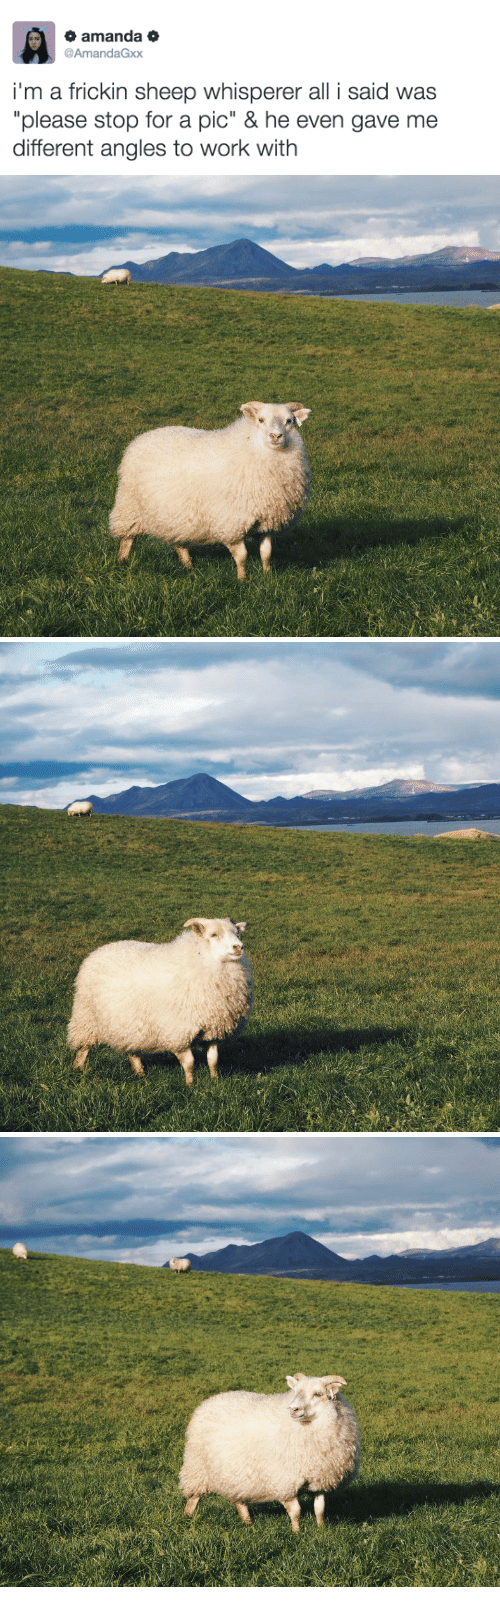 """Work, Sheep, and All: amanda o  AmandaGxx  i'm a frickin sheep whisperer all i said was  """"please stop for a pic"""" & he even gave me  different angles to work with"""